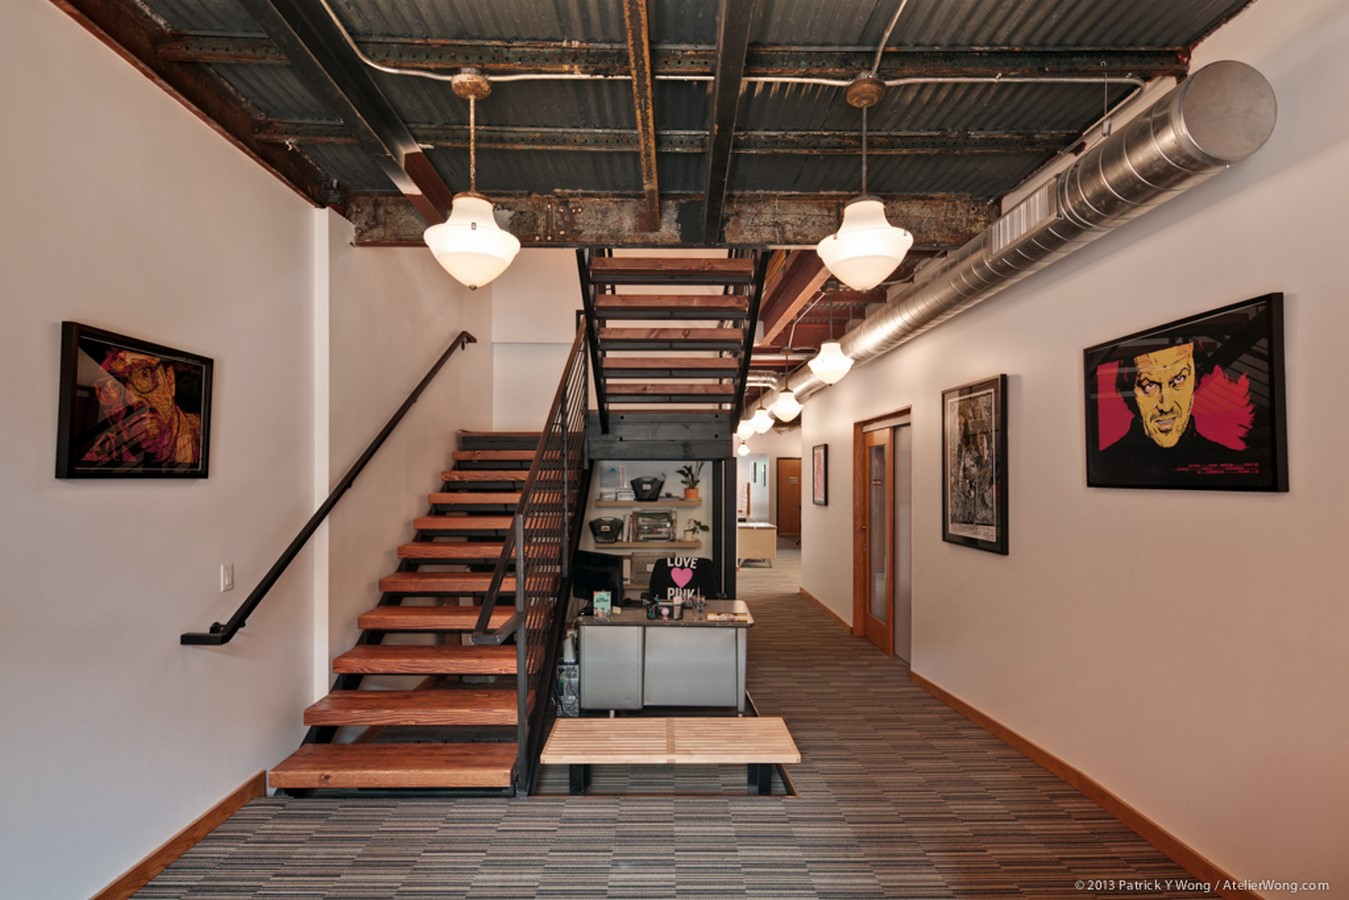 5104 East 6th Street Offices by Weiss Architecture: Sheet 3